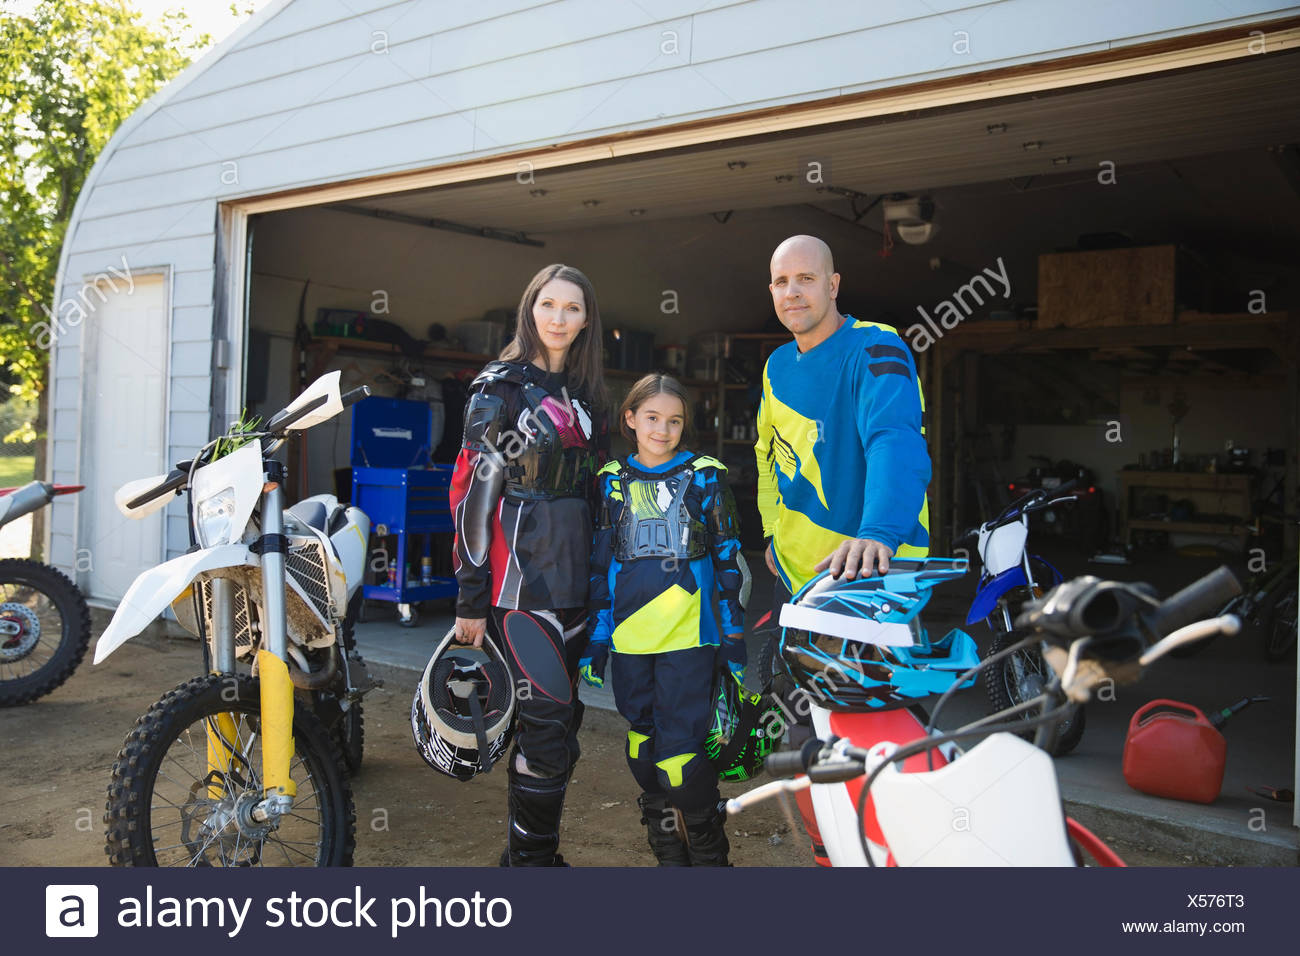 Portrait confident family near motorbikes in driveway - Stock Image